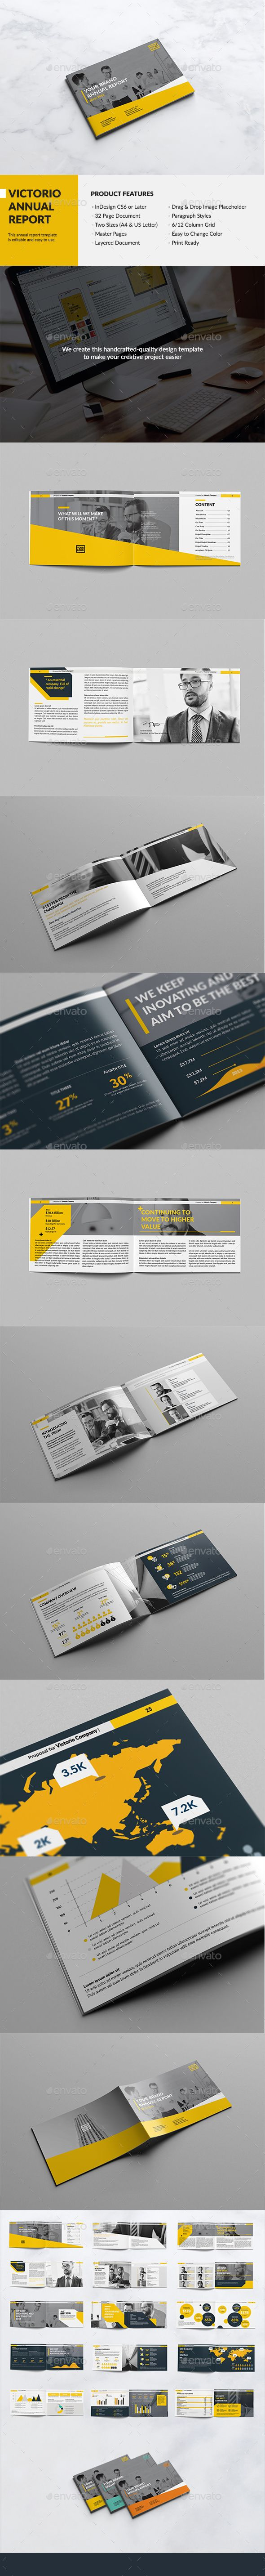 Victorio Landscape Annual Report Template InDesign INDD. Download here: http://graphicriver.net/item/victorio-landscape-annual-report/15885166?ref=ksioks